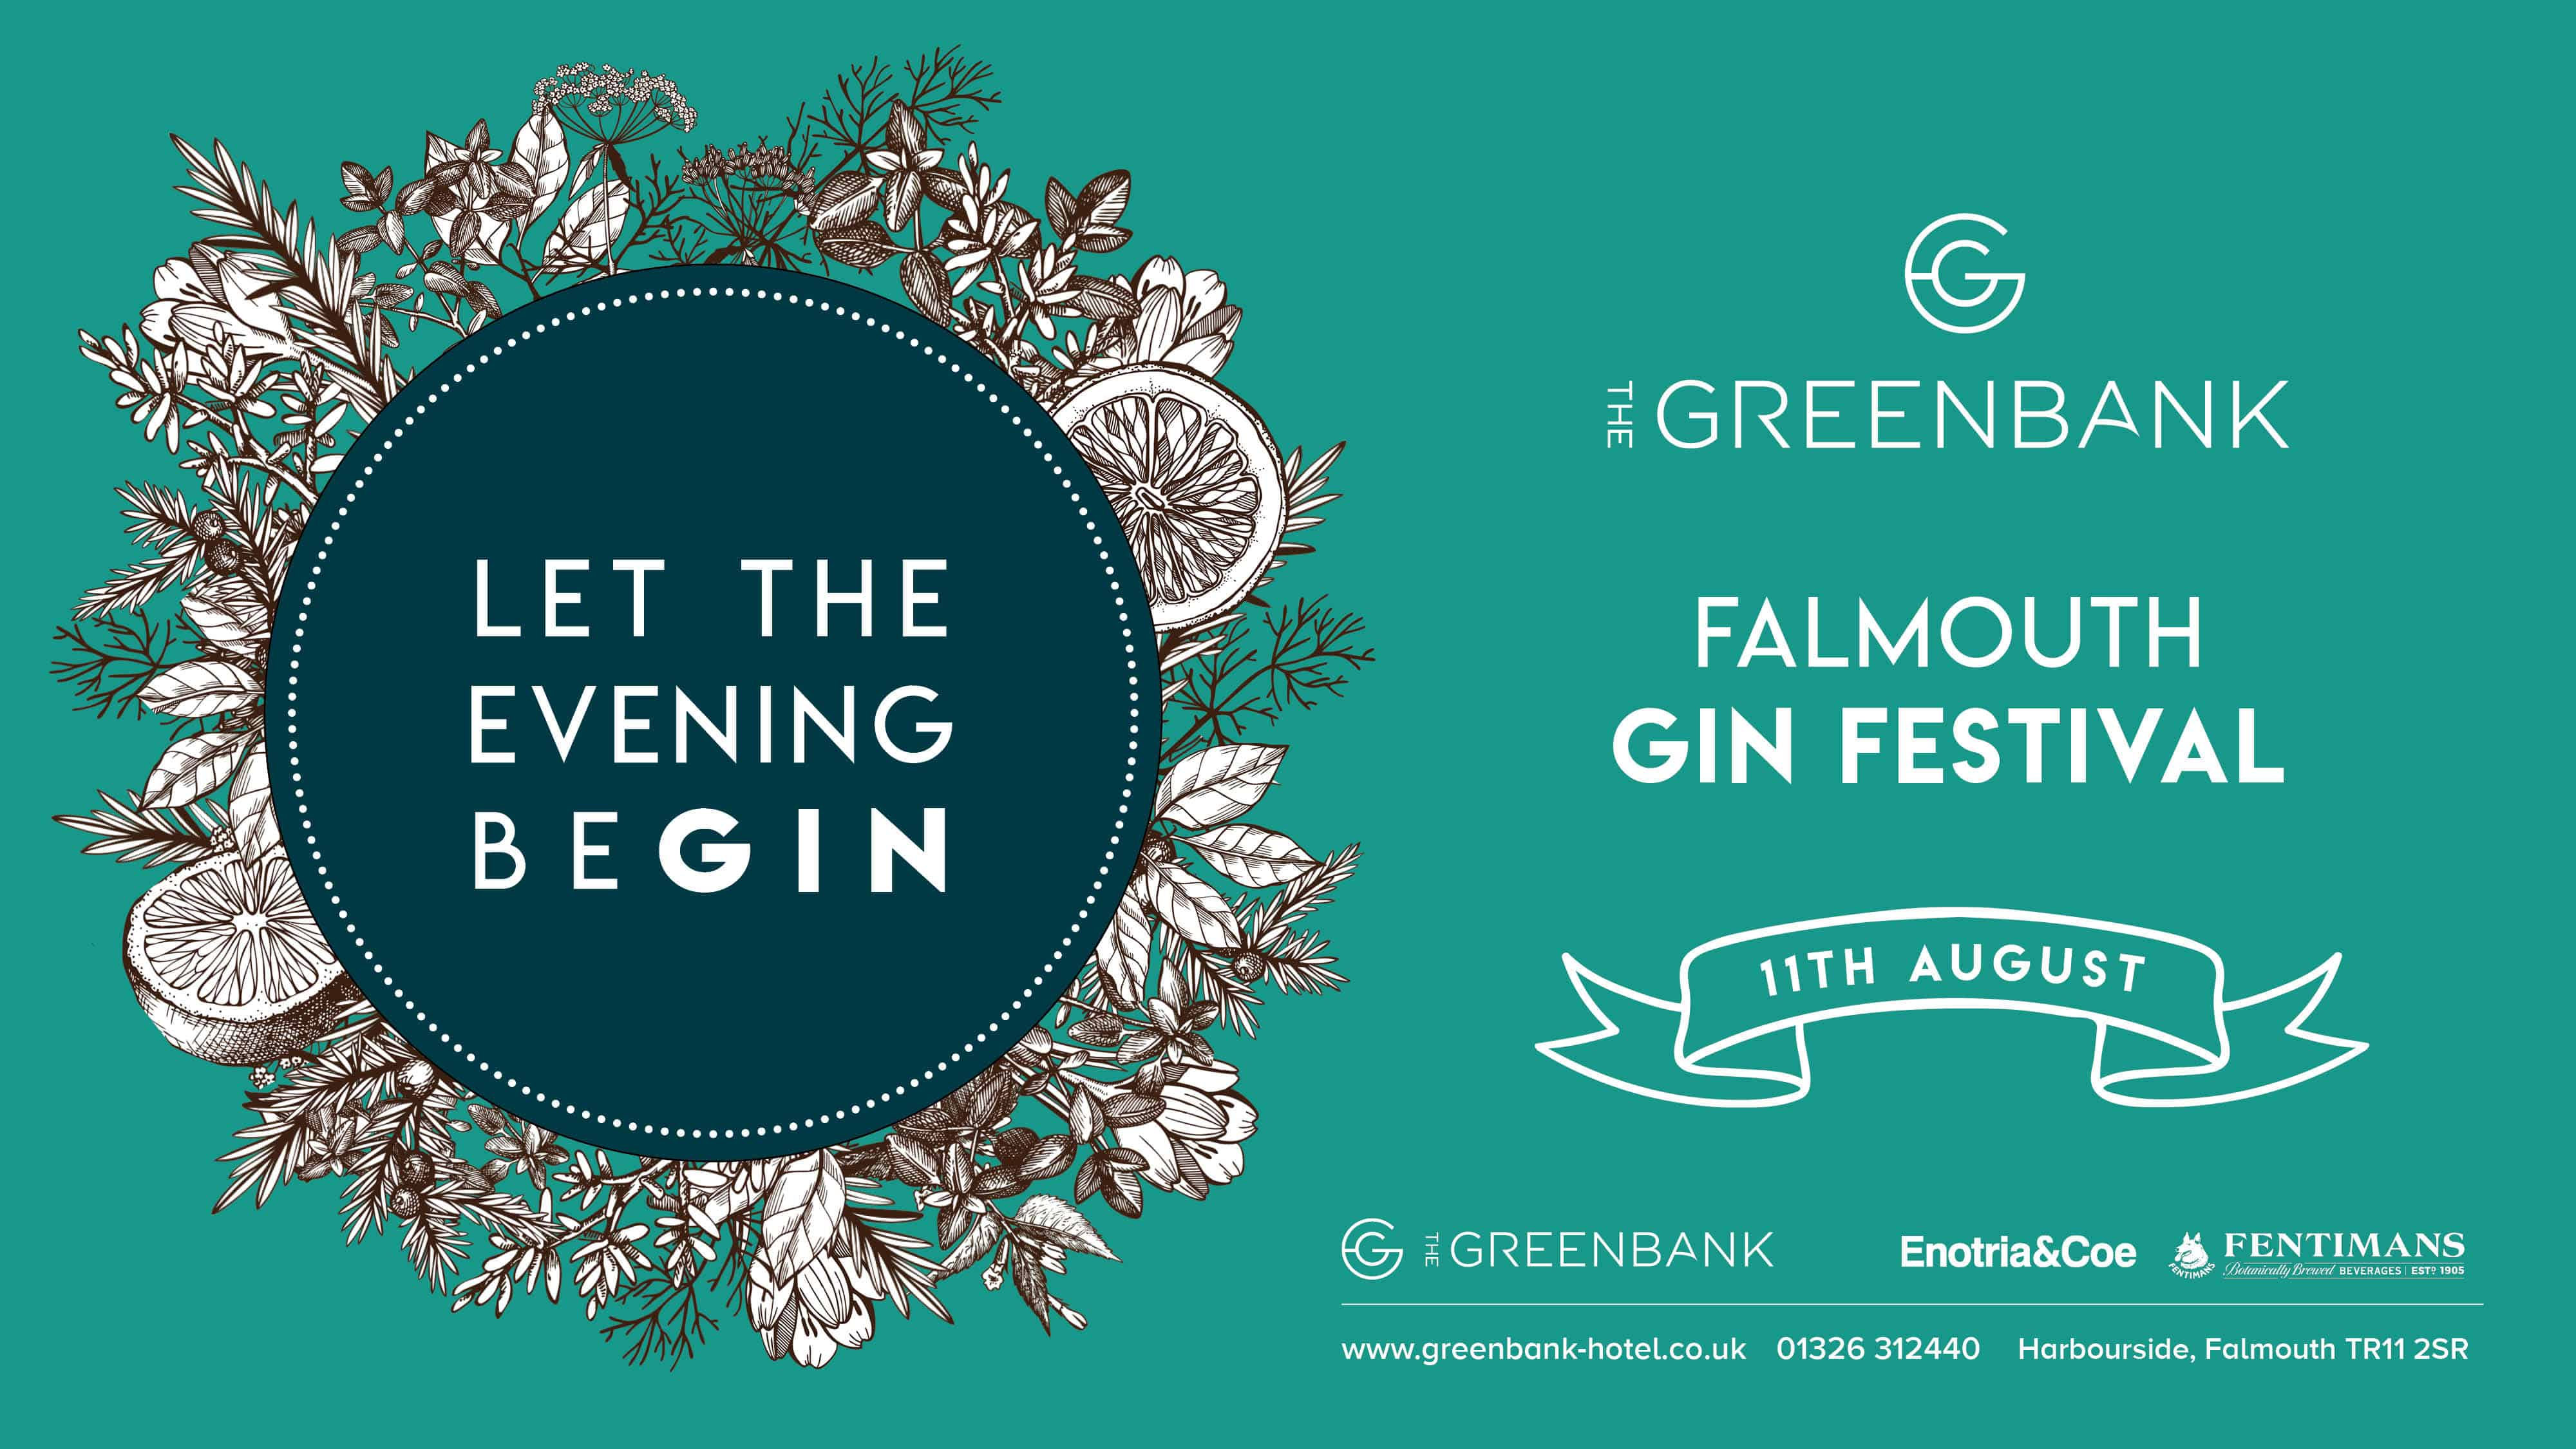 Cover-Photo-for-Gin-Festival-let-the-evening-begin